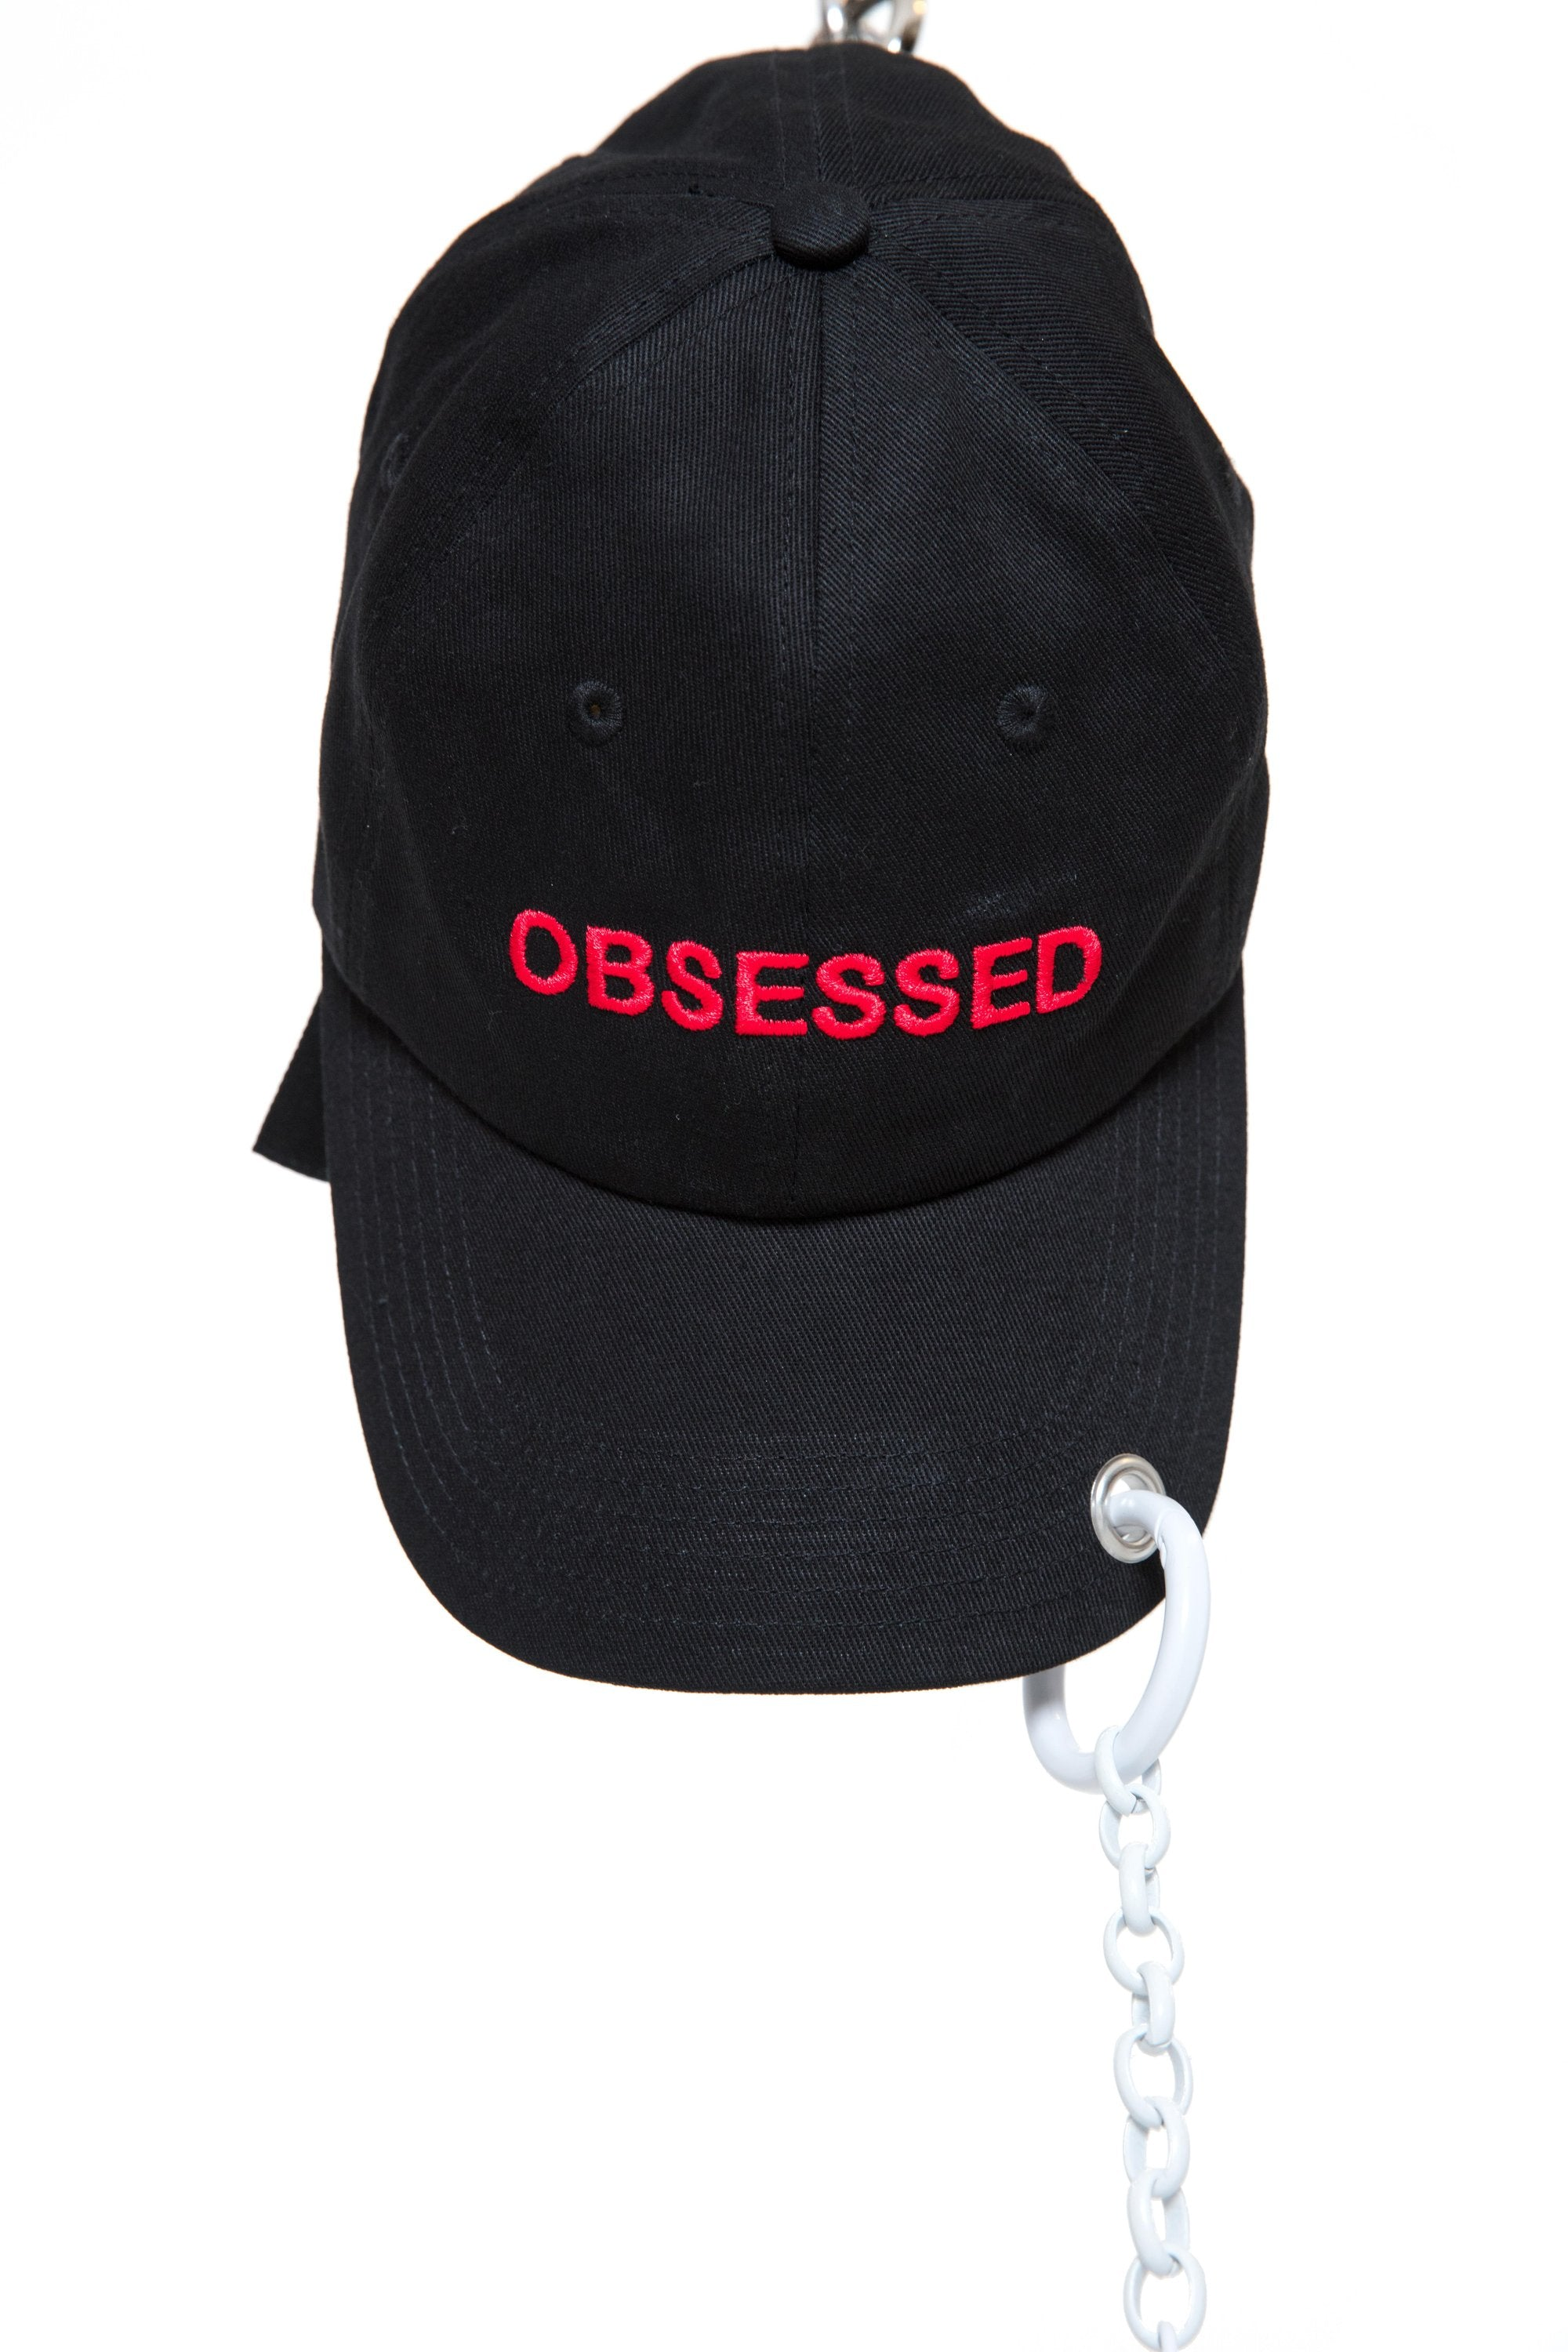 OBSESSED CAP - BLACK